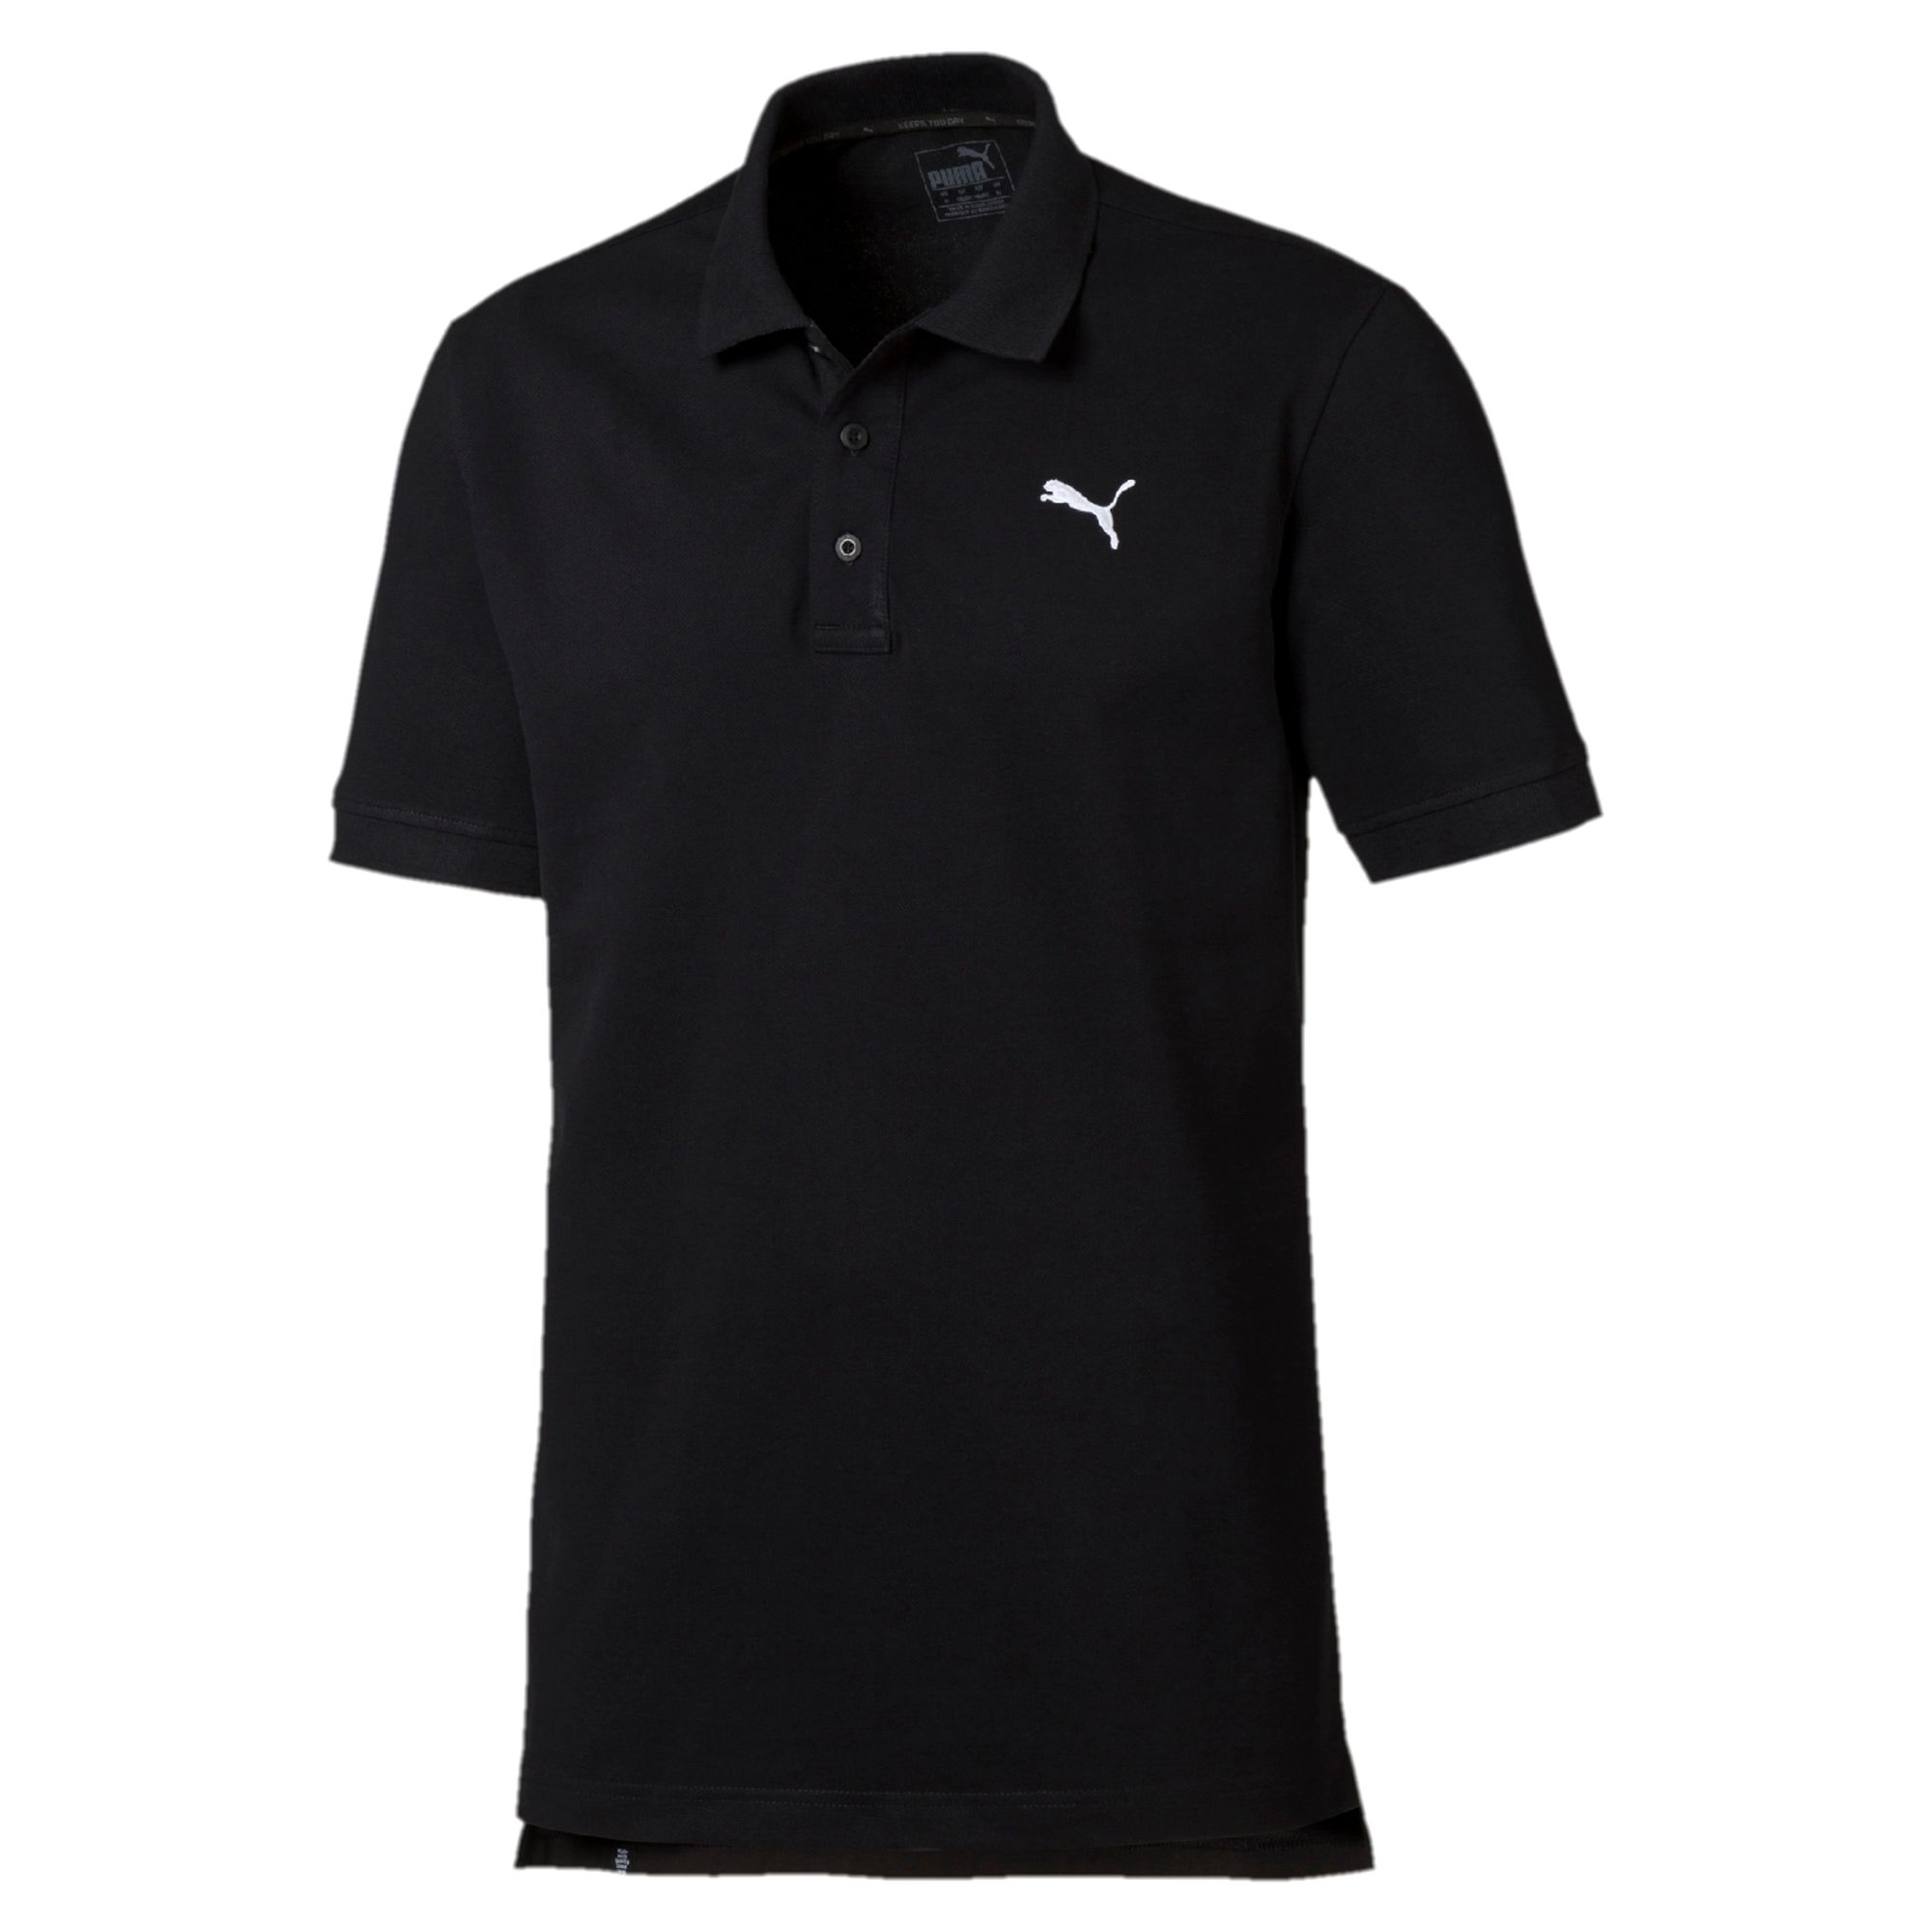 Puma ESS Pique Polo Cotton Black koszulka